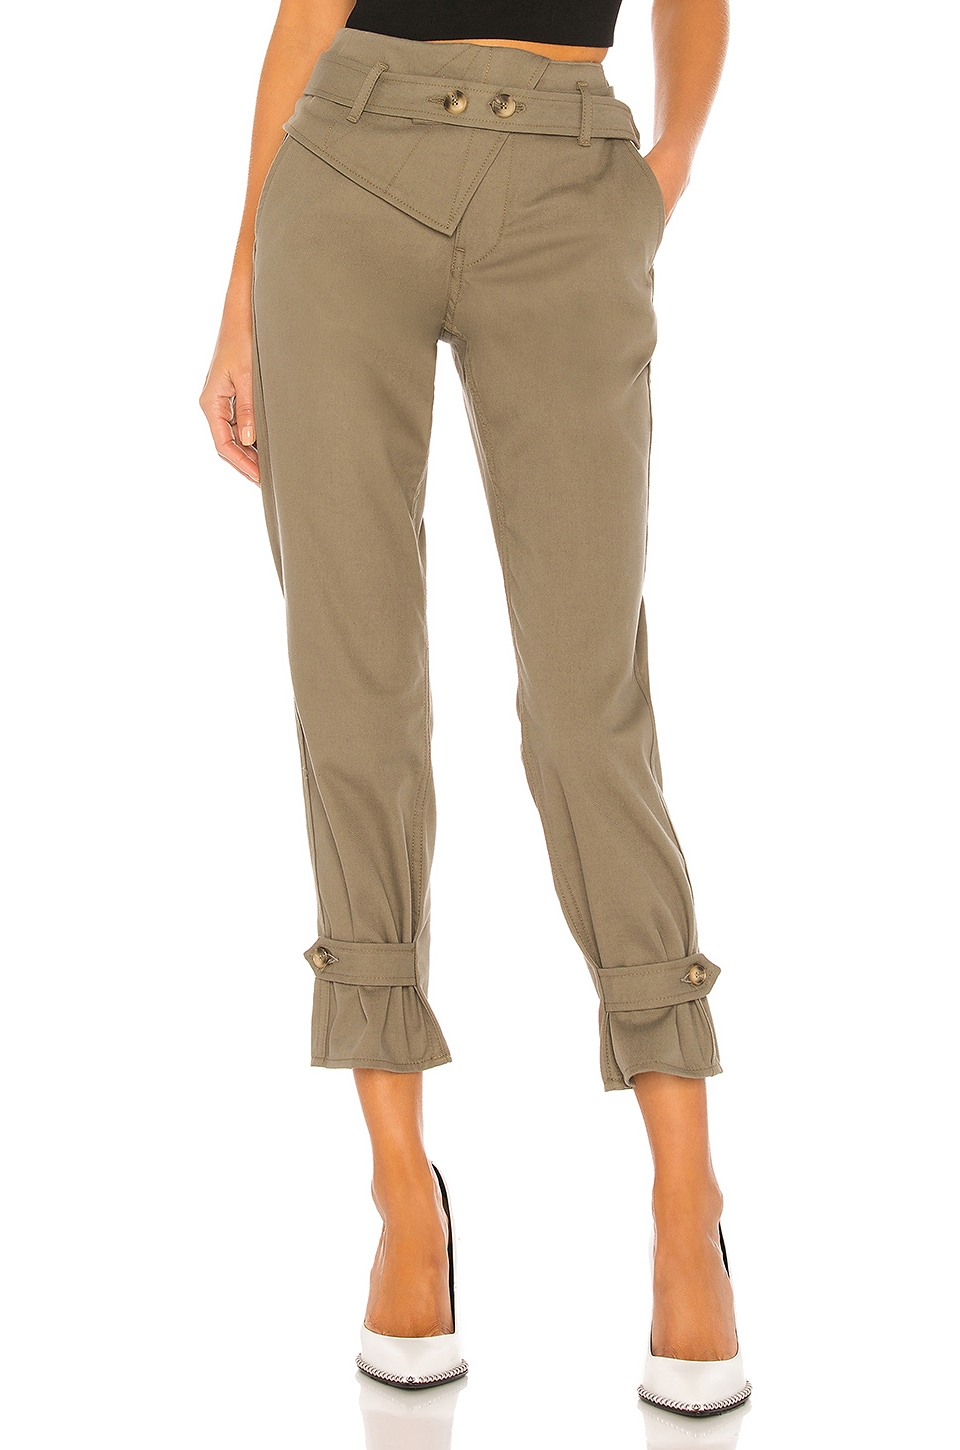 TRAVE Kennedy Pant in Green Fields